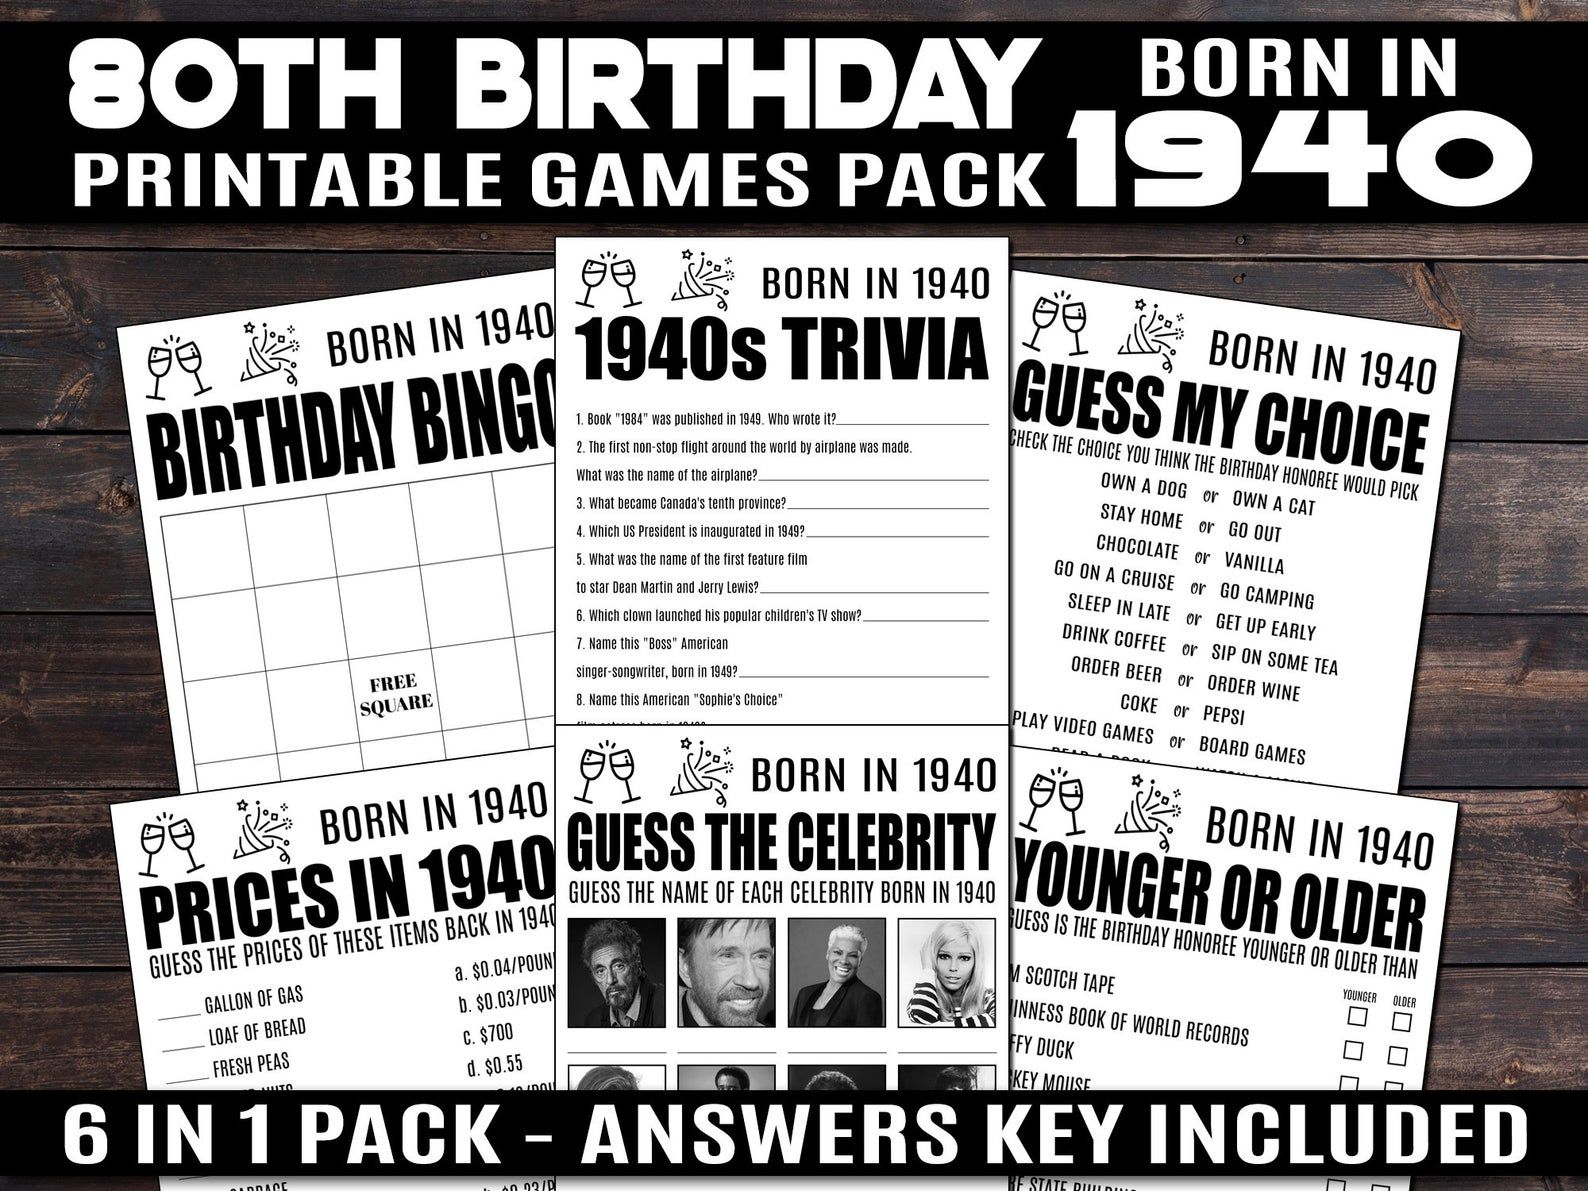 Trivia Quiz Price is Right Born in 1940 1940 Trivia Games Turning 80 Party Name the Celebrity 80th Birthday Party Games Printable